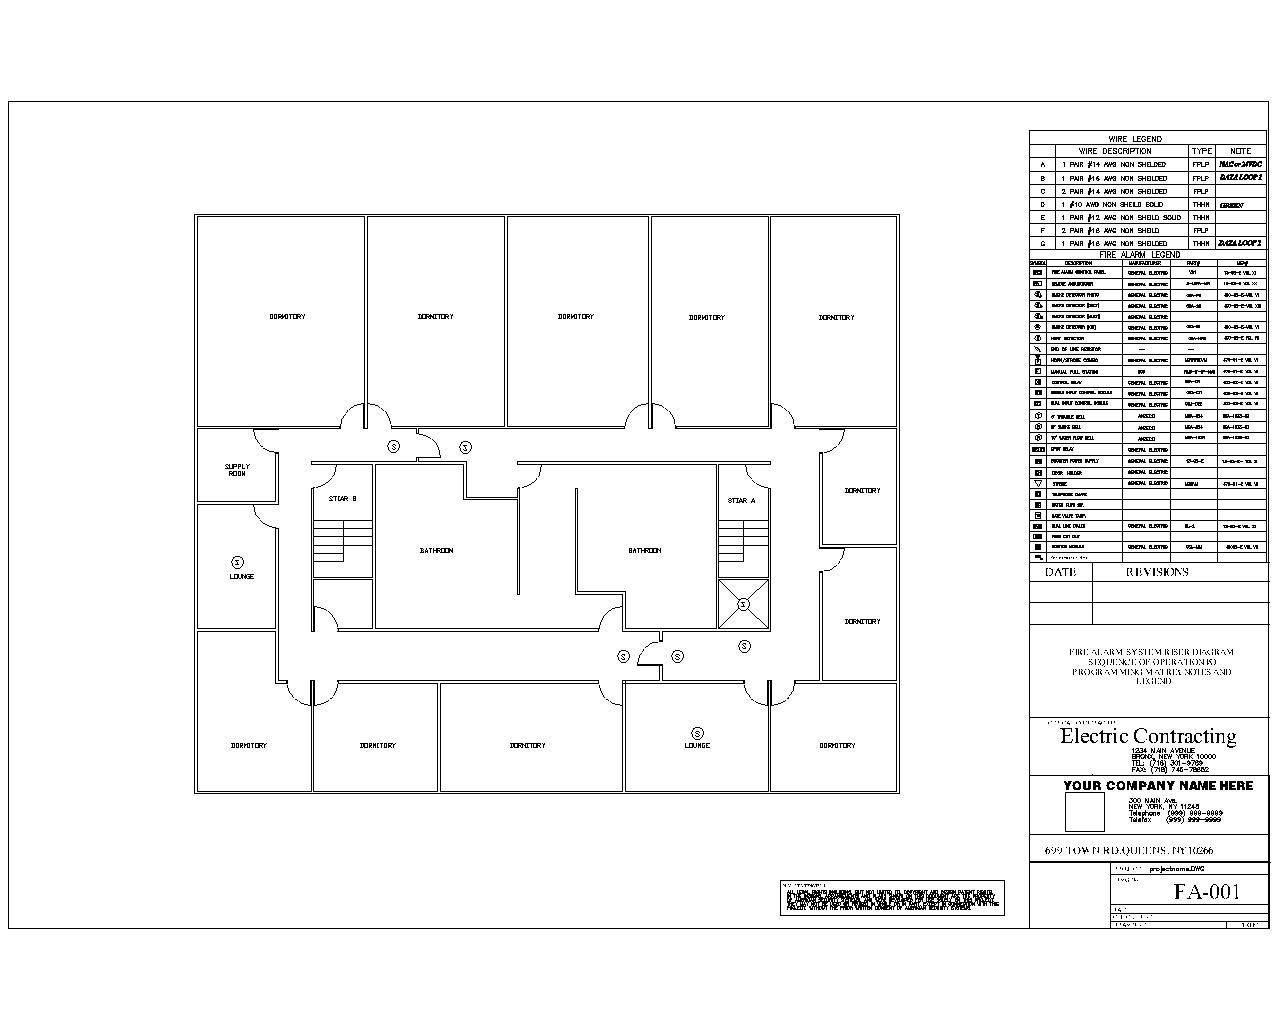 intell tech design group examples wix com fire alarm layout drawing at Fire Alarm Layout Diagram